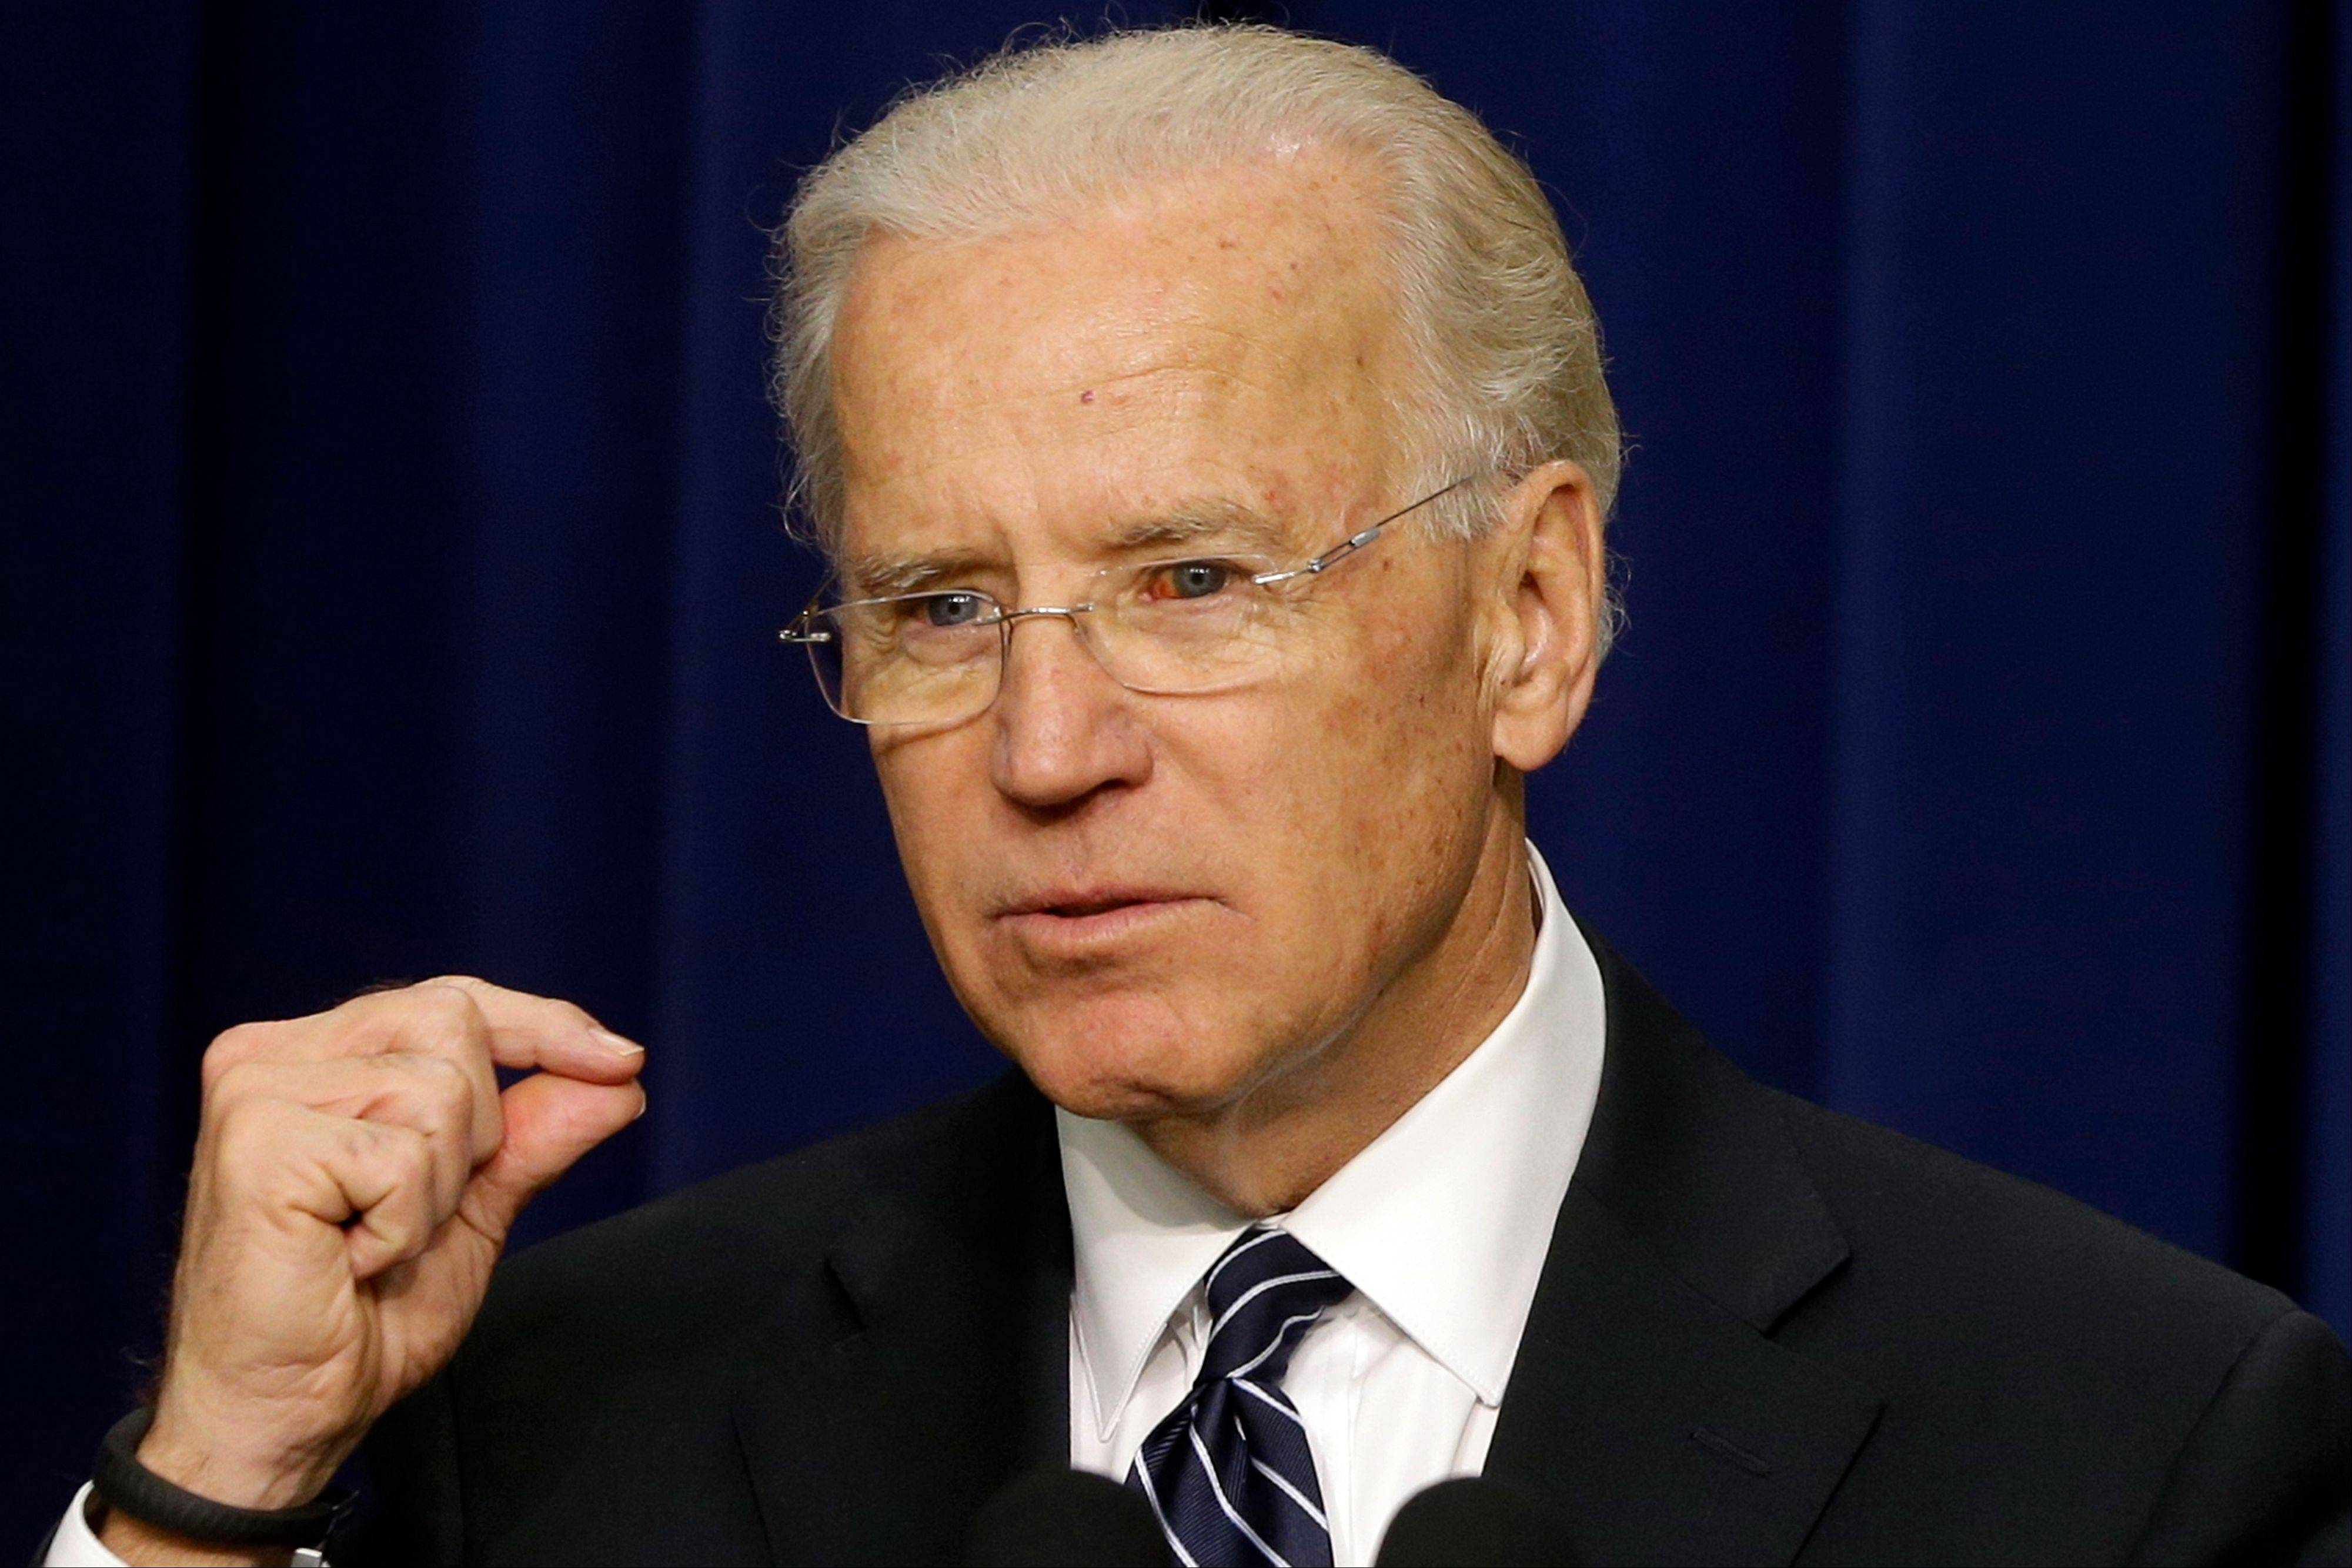 Vice President Joe Biden hoped to rally support for White House gun-control measures while speaking at a conference Thursday in Danbury, Conn., just a few miles from the site of the Sandy Hook Elementary School shootings of Dec. 14.